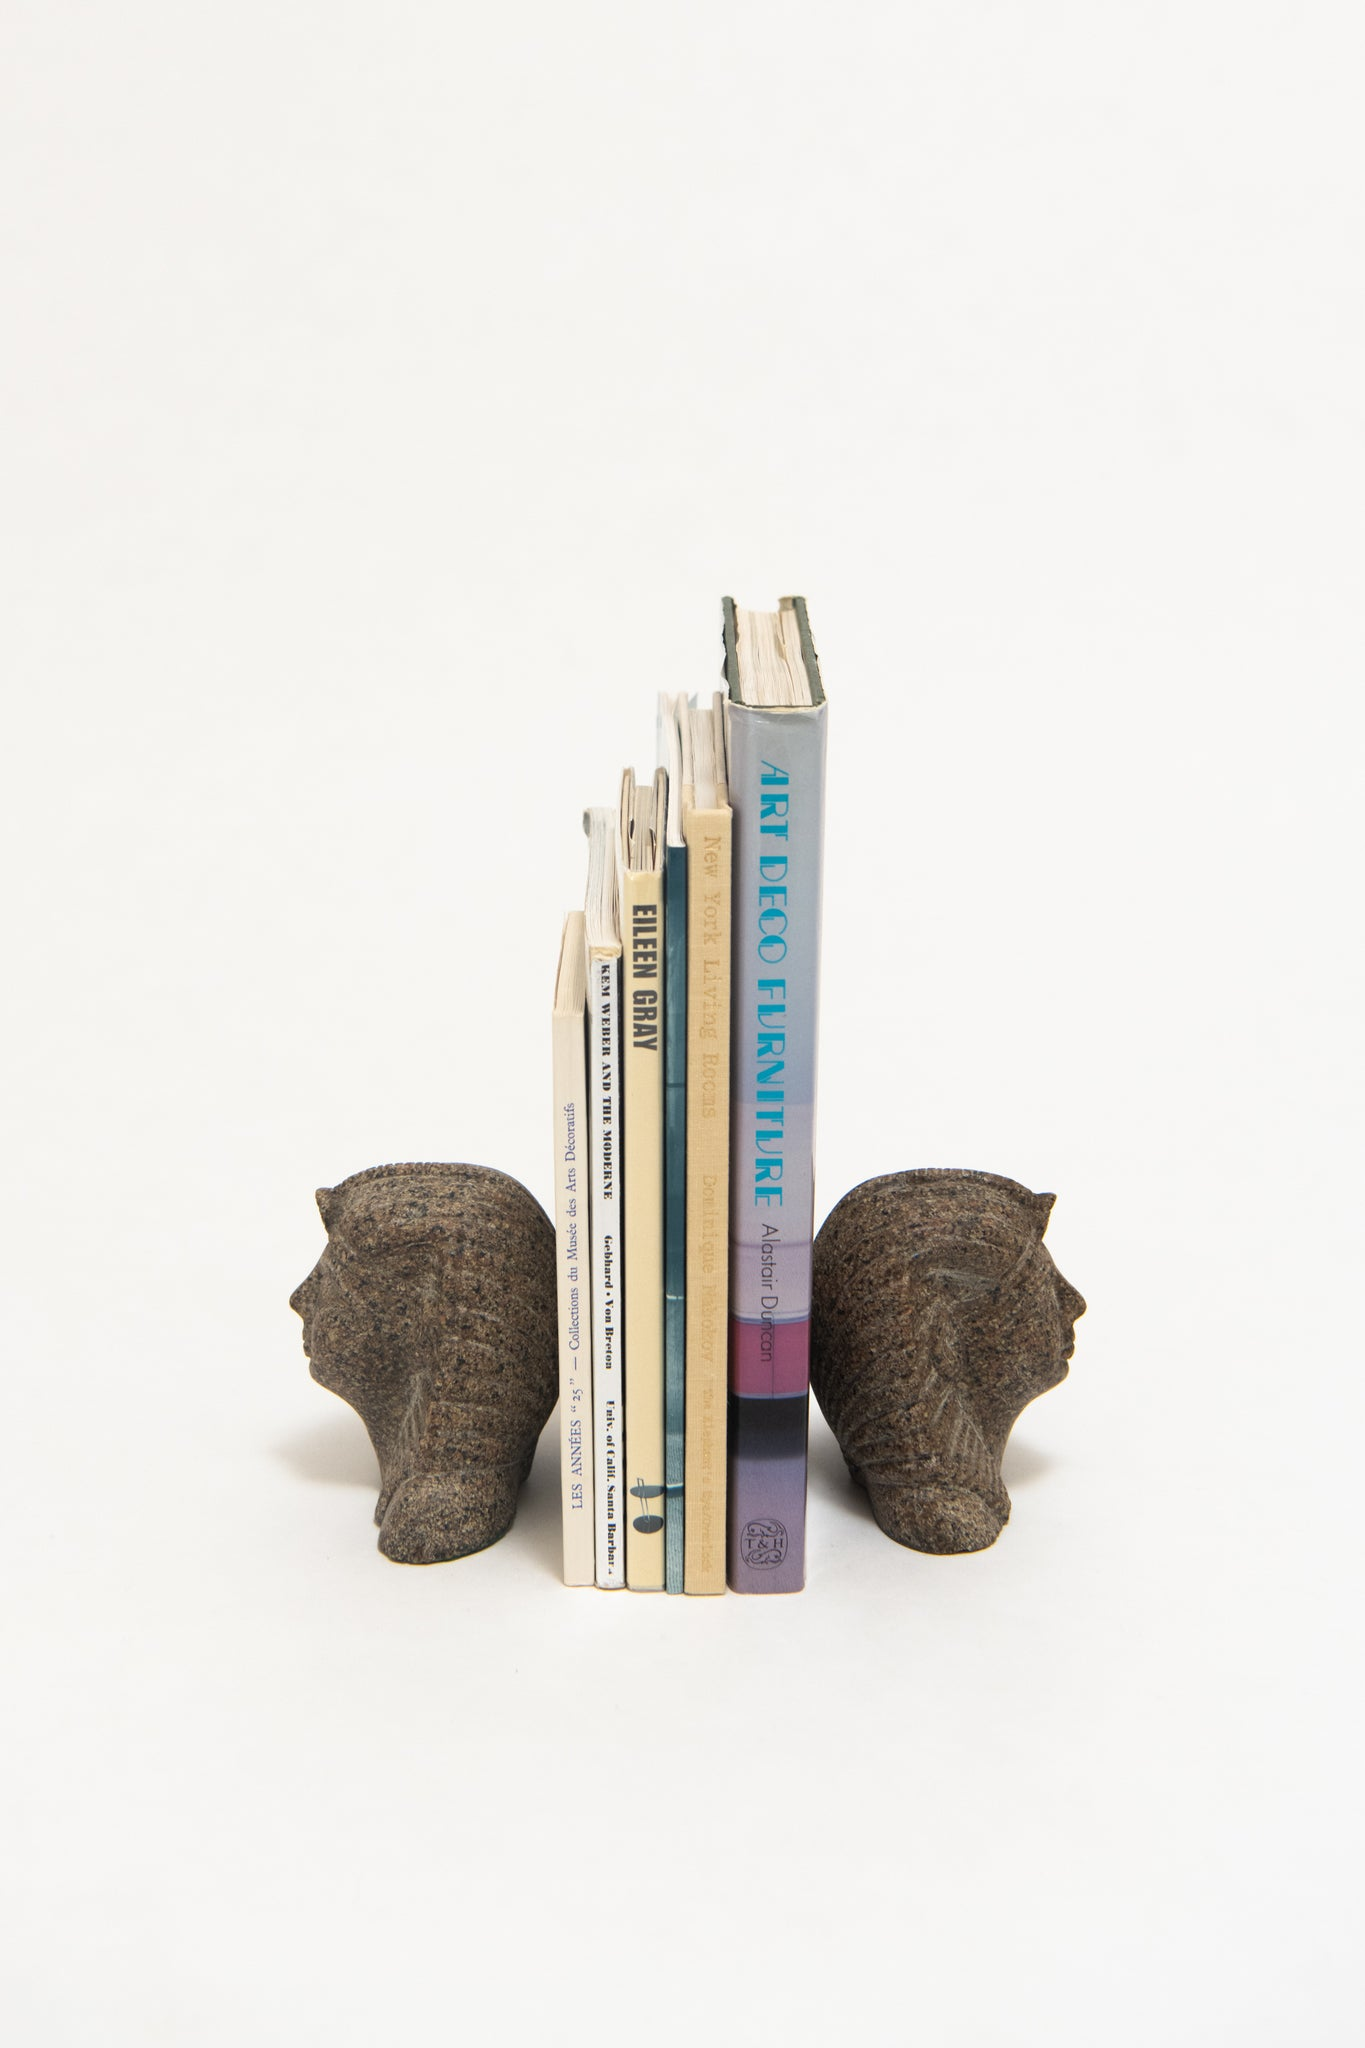 FRENCH, CARVED EGYPTIAN BOOKENDS, C. 1950